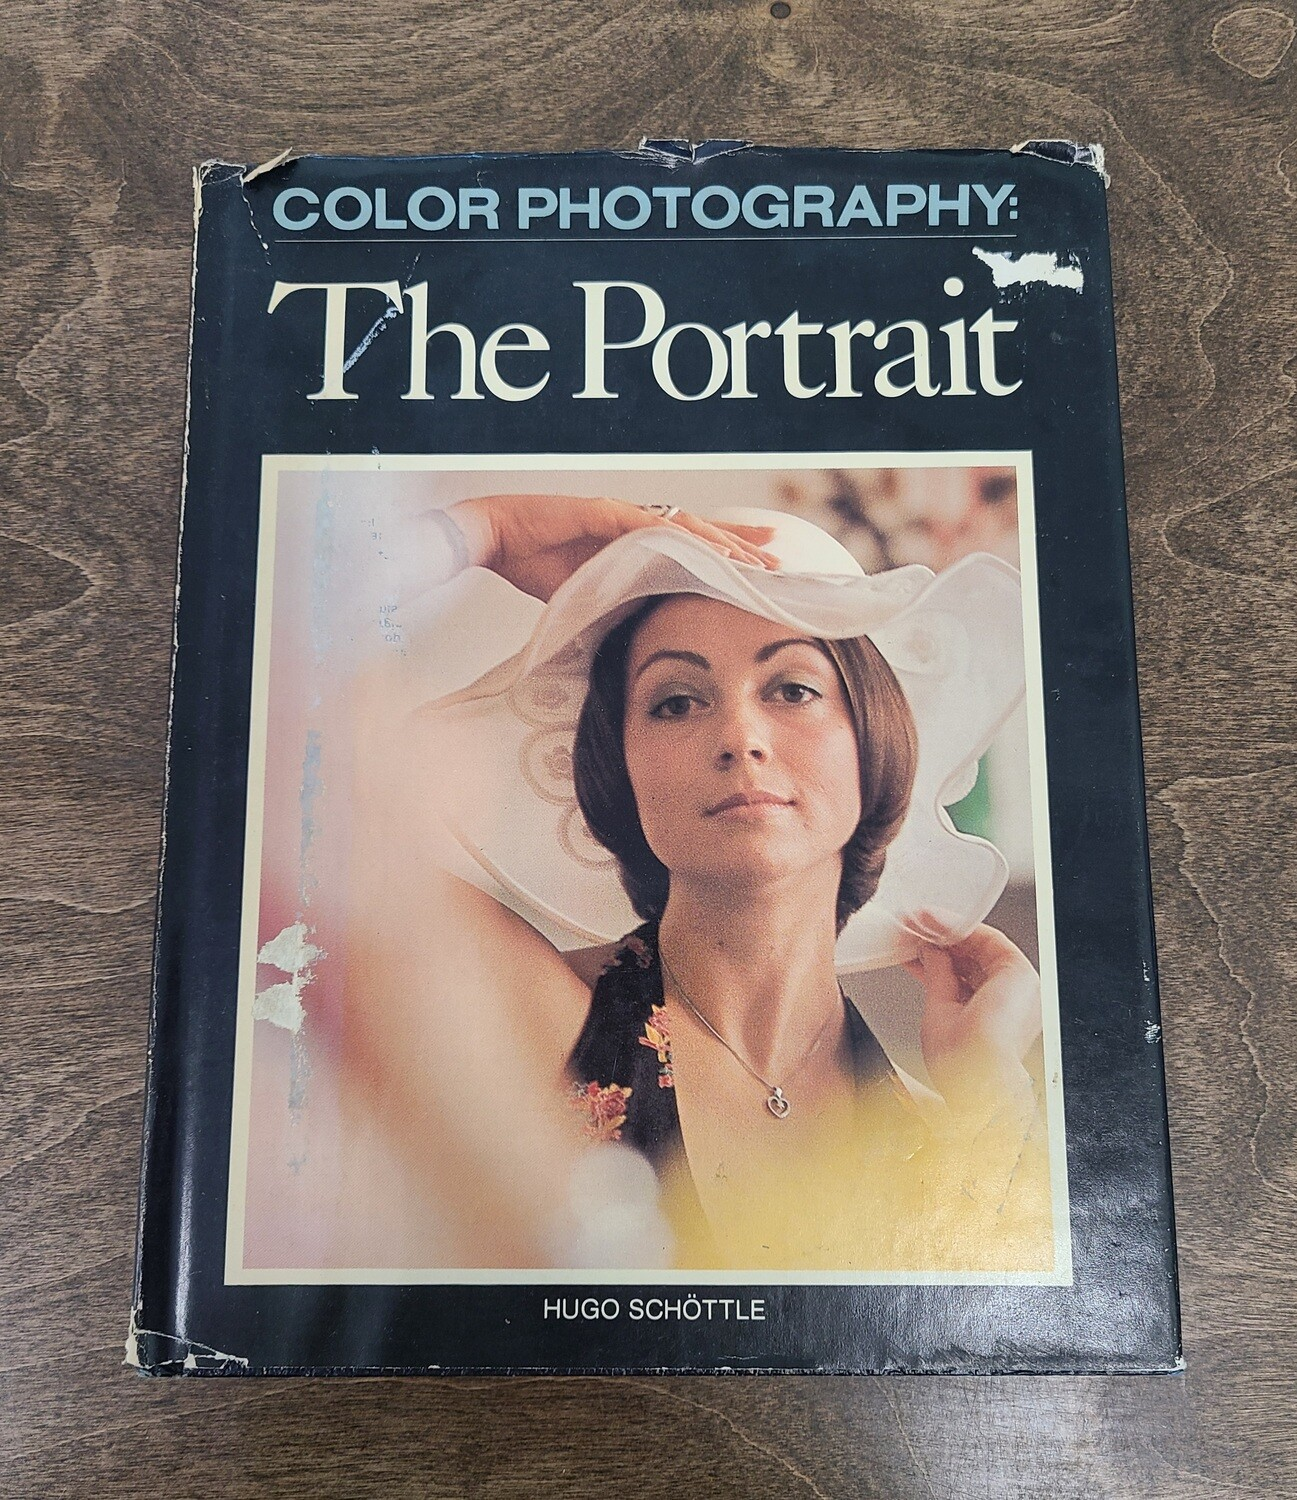 Color Photography: The Portrait by Hugo Schottle